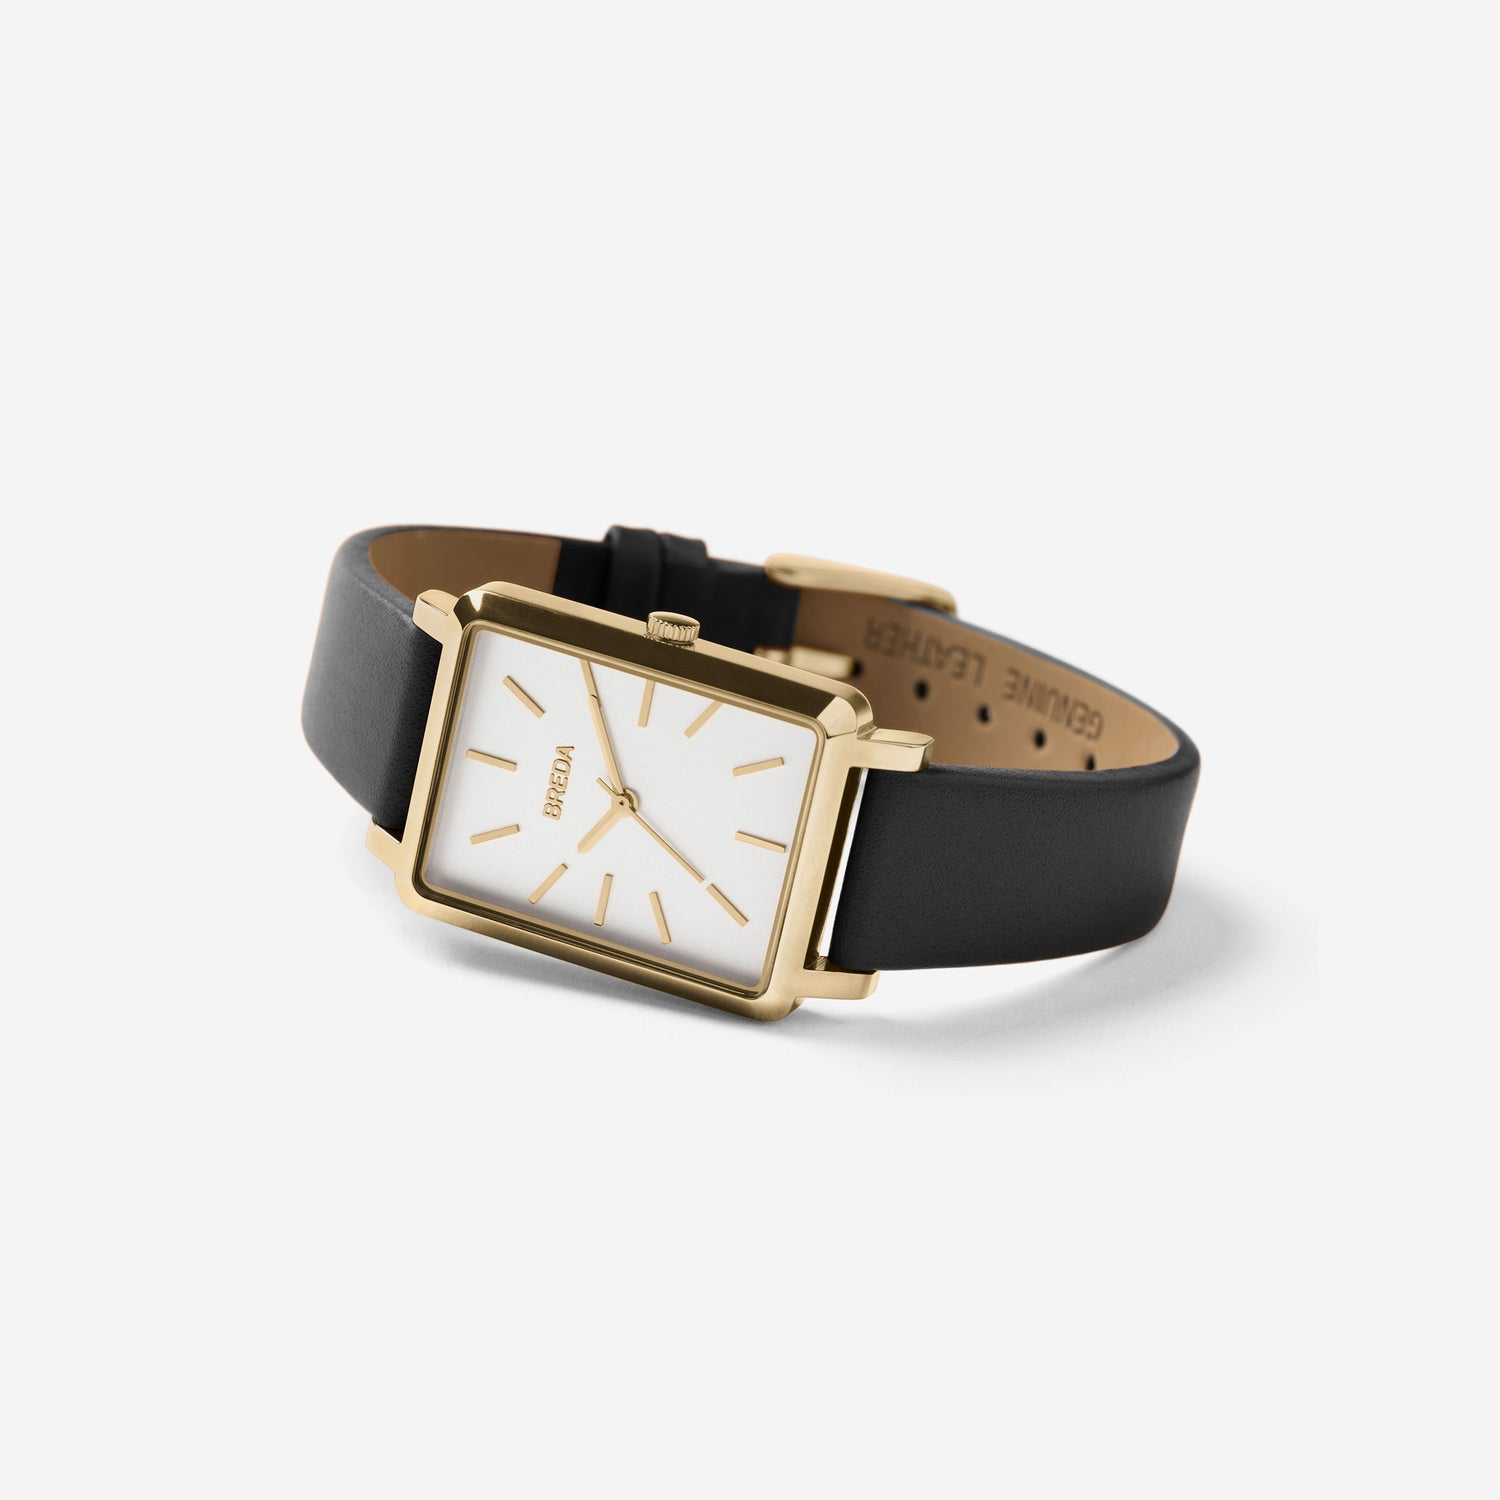 breda-baer-1729k-gold-black-leather-watch-angle